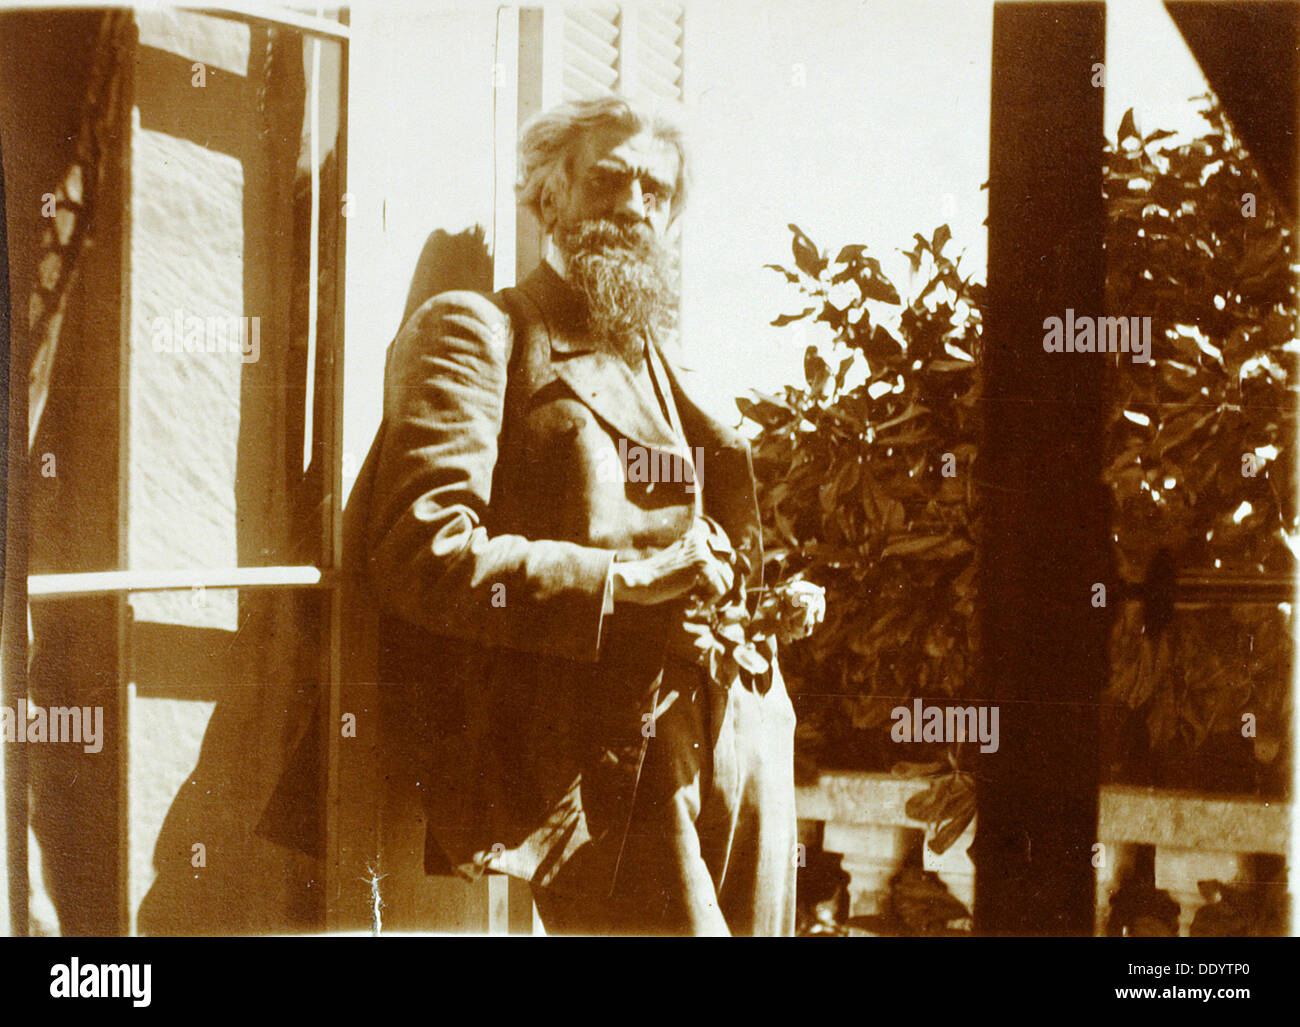 Vladimir Solovyov, Russian philosopher, poet, and literary critic, Cannes, France, 1899. - Stock Image